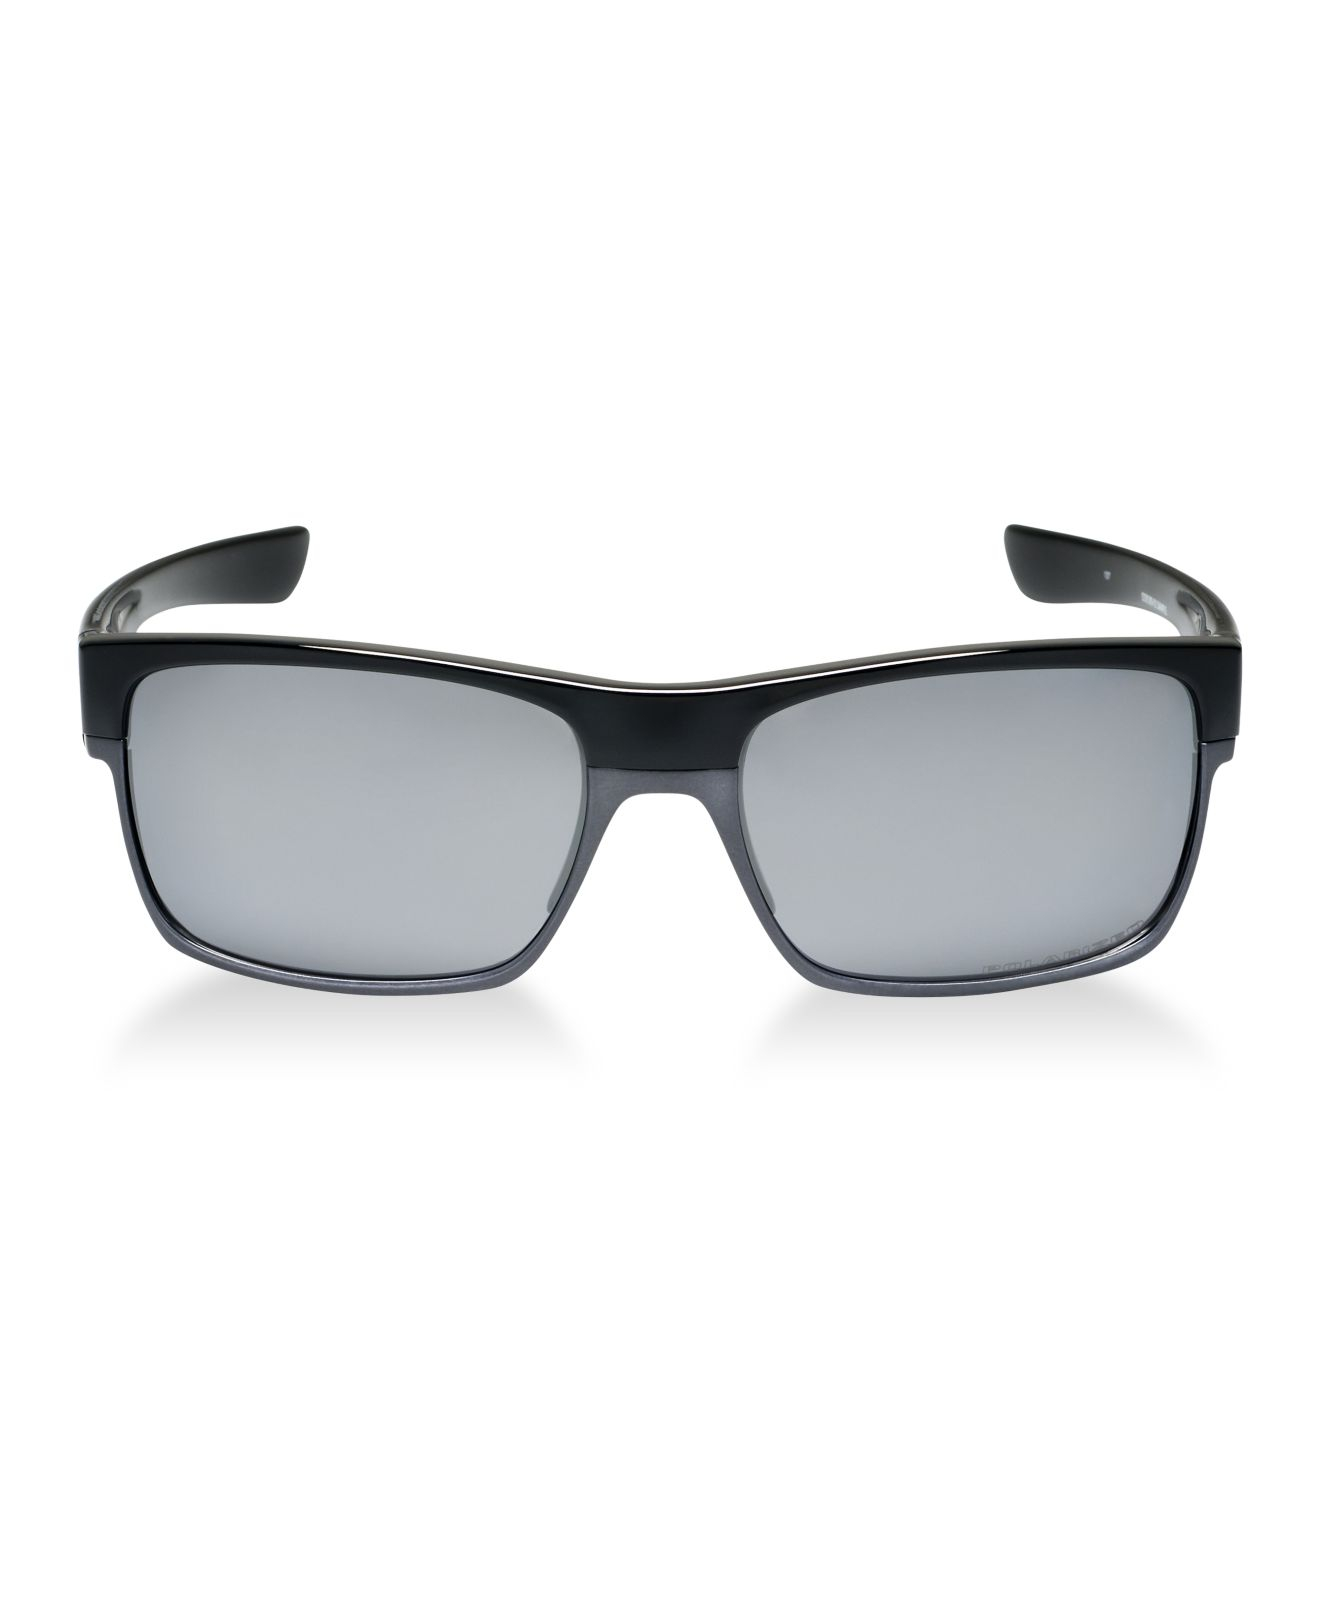 2c21172bd22 Are Oakley Sunglasses Made In The Usa « Heritage Malta